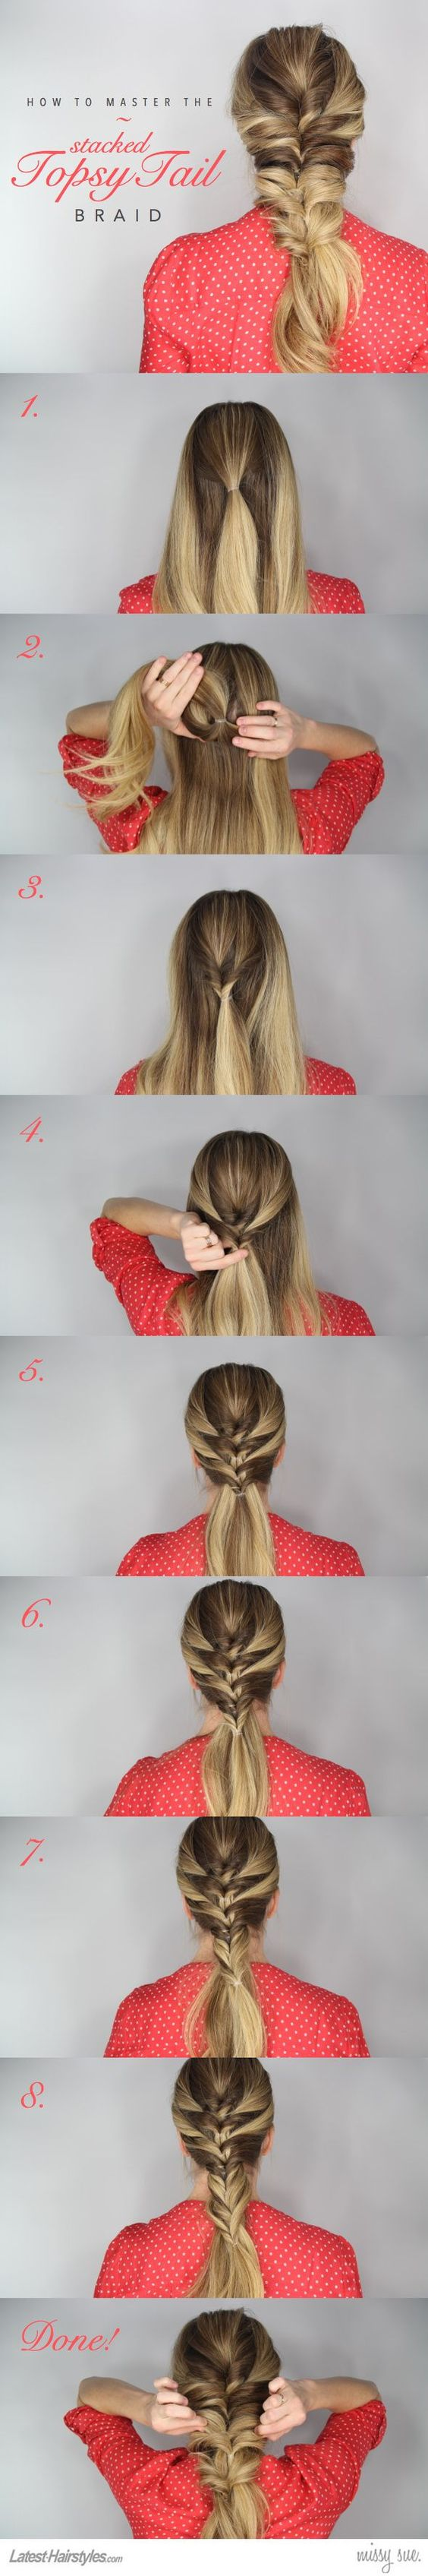 stacked-topsy-tail-braid via